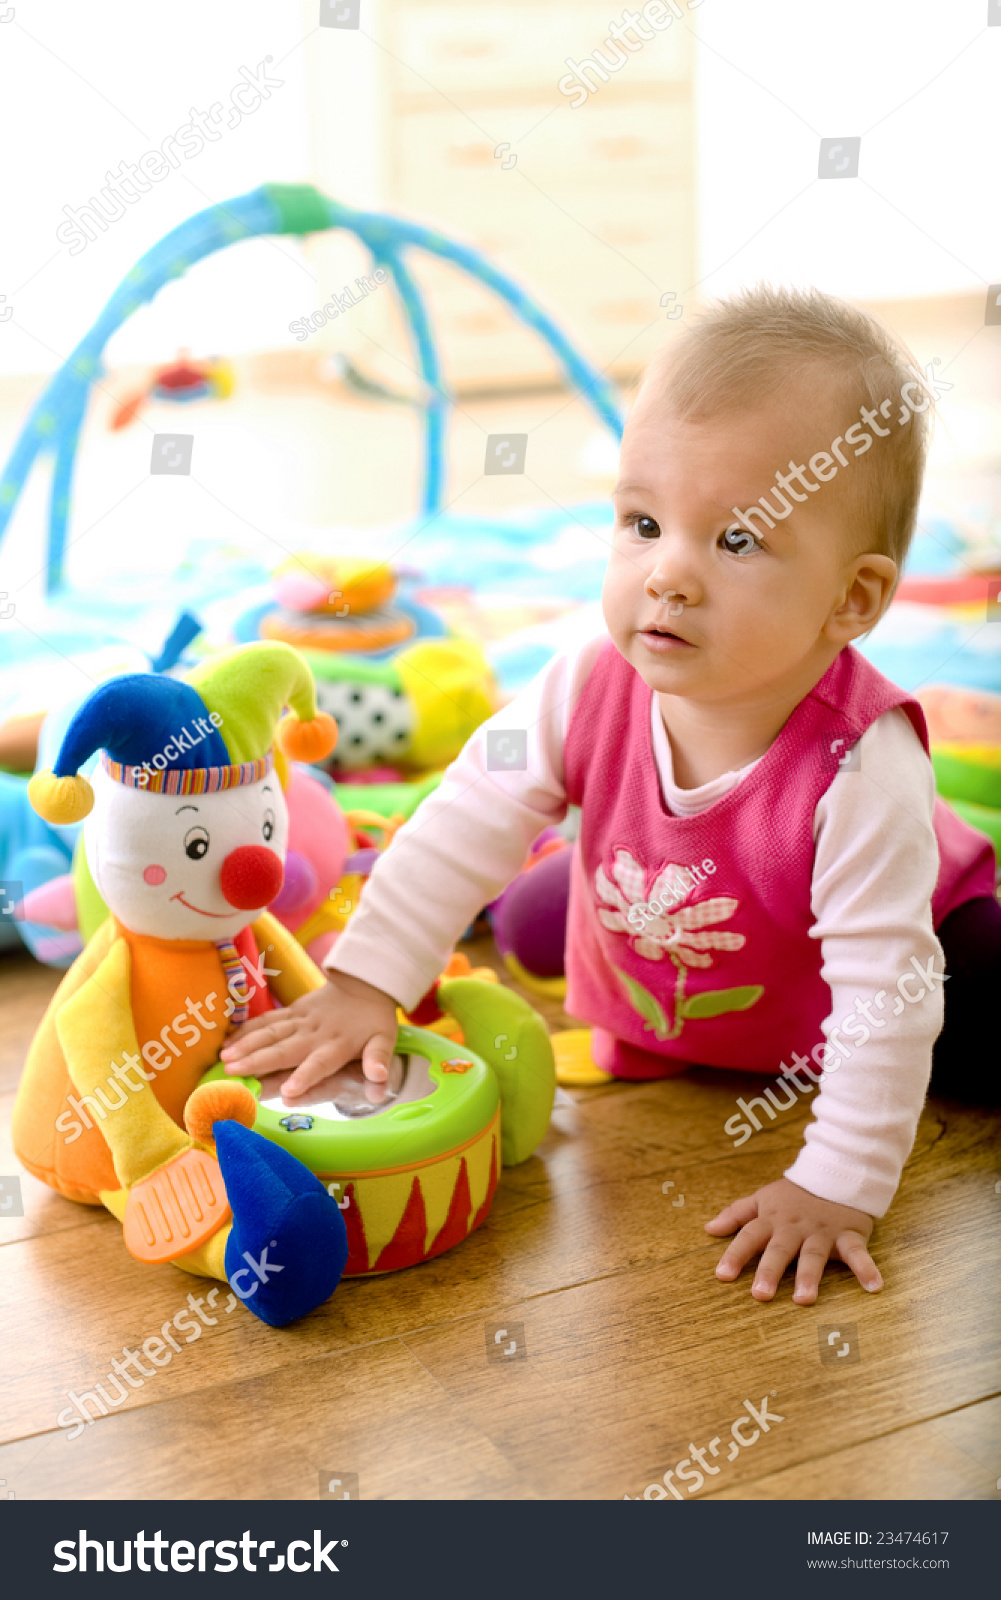 Toys For 9 Month Girl : Baby girl months playing with soft toys at home